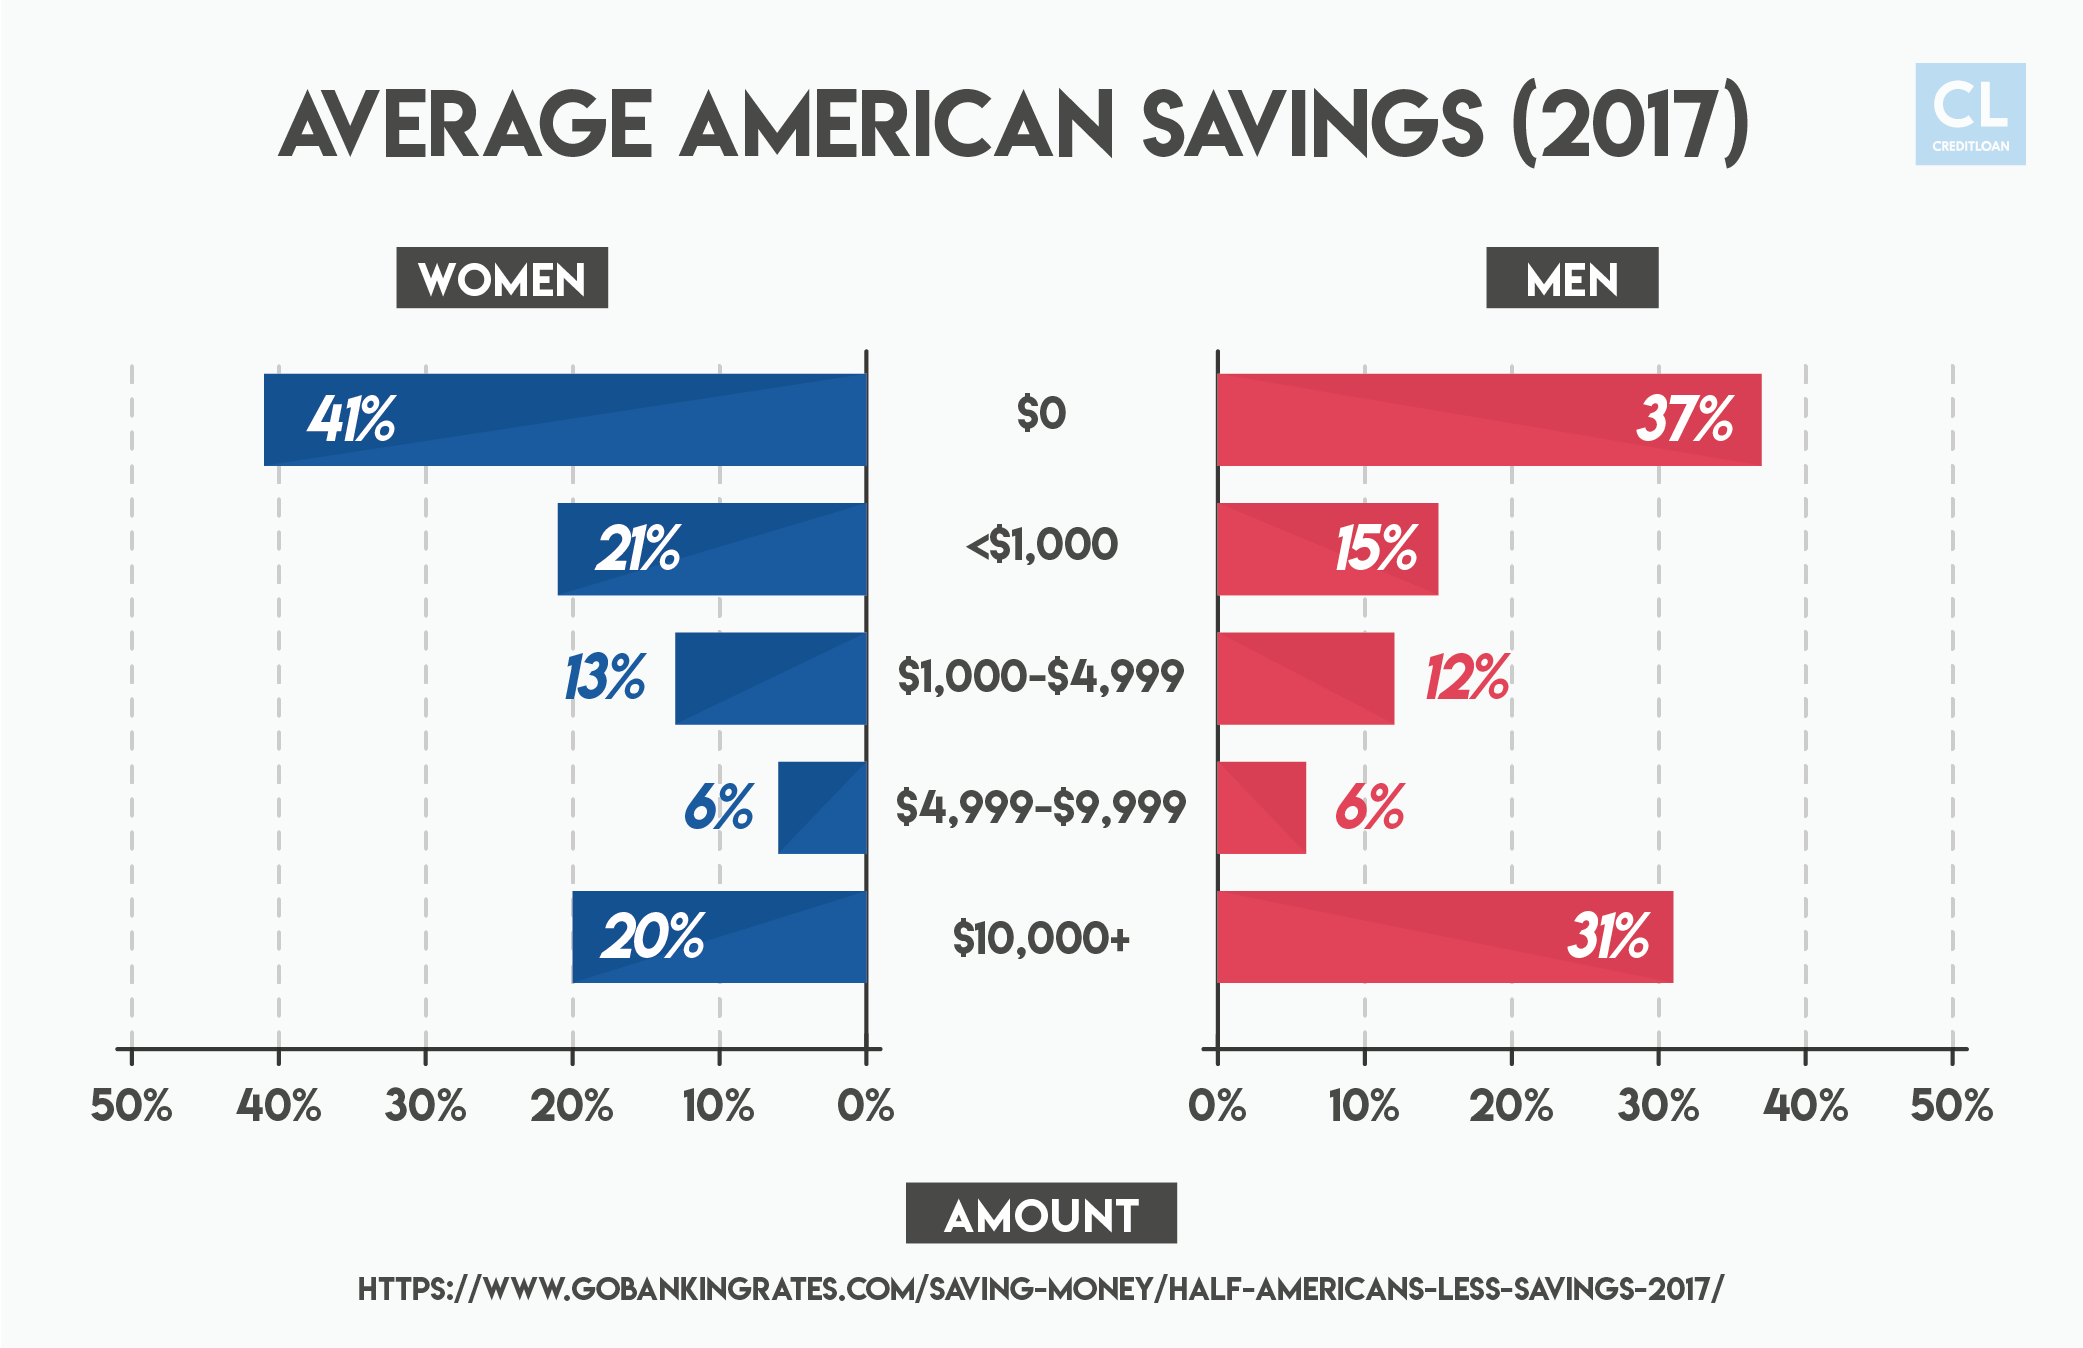 Average American Savings (2017)